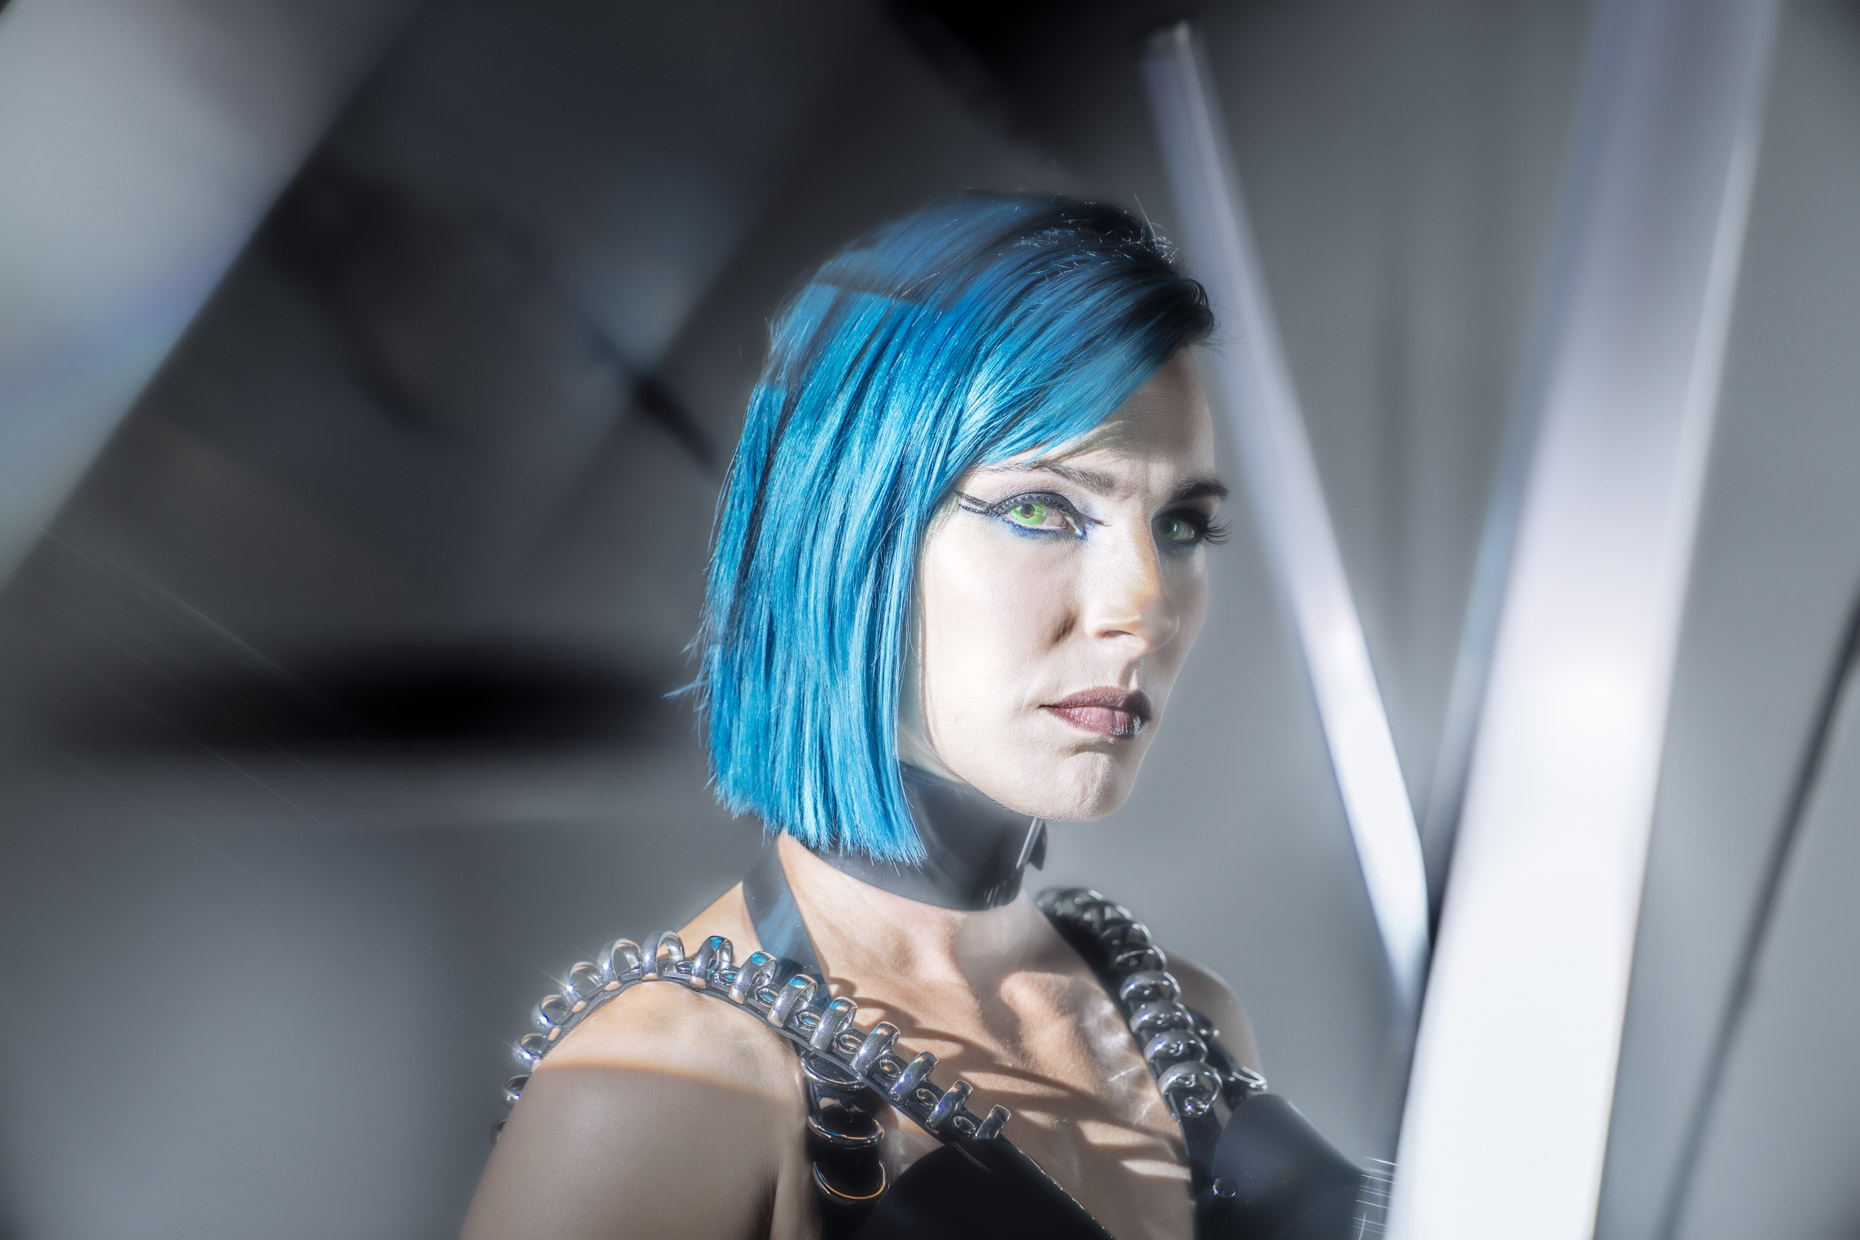 Portrait of cyber punk musician Le Destroy with blue hair